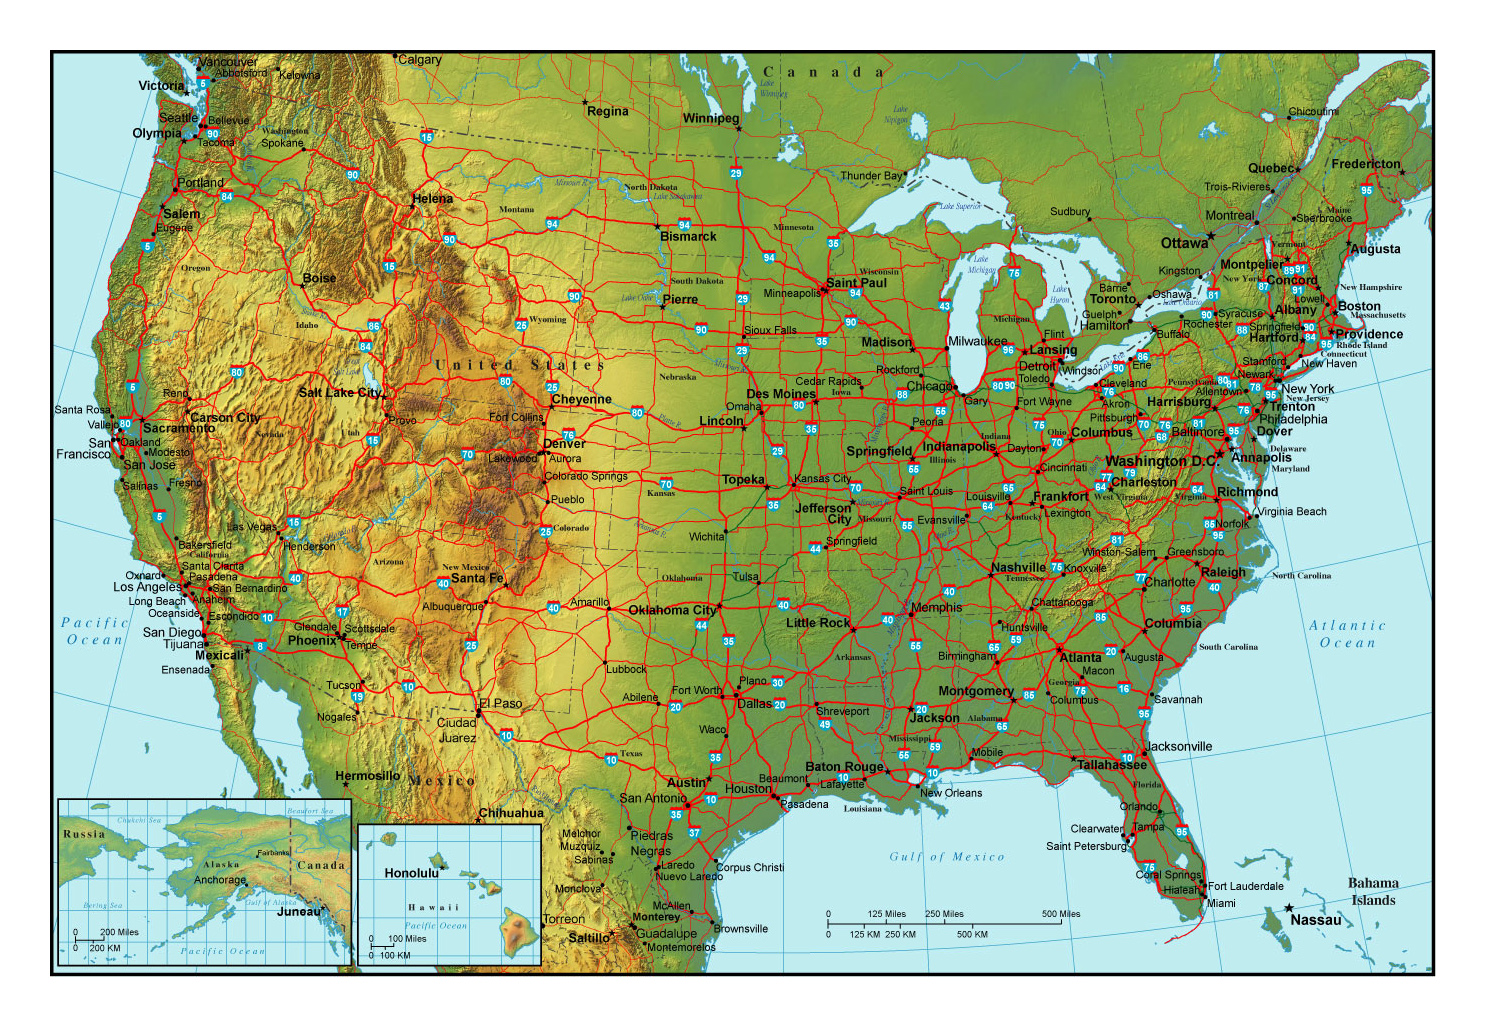 Image of: Topographical Map Of The Usa With Highways And Major Cities Usa Maps Of The Usa Maps Collection Of The United States Of America